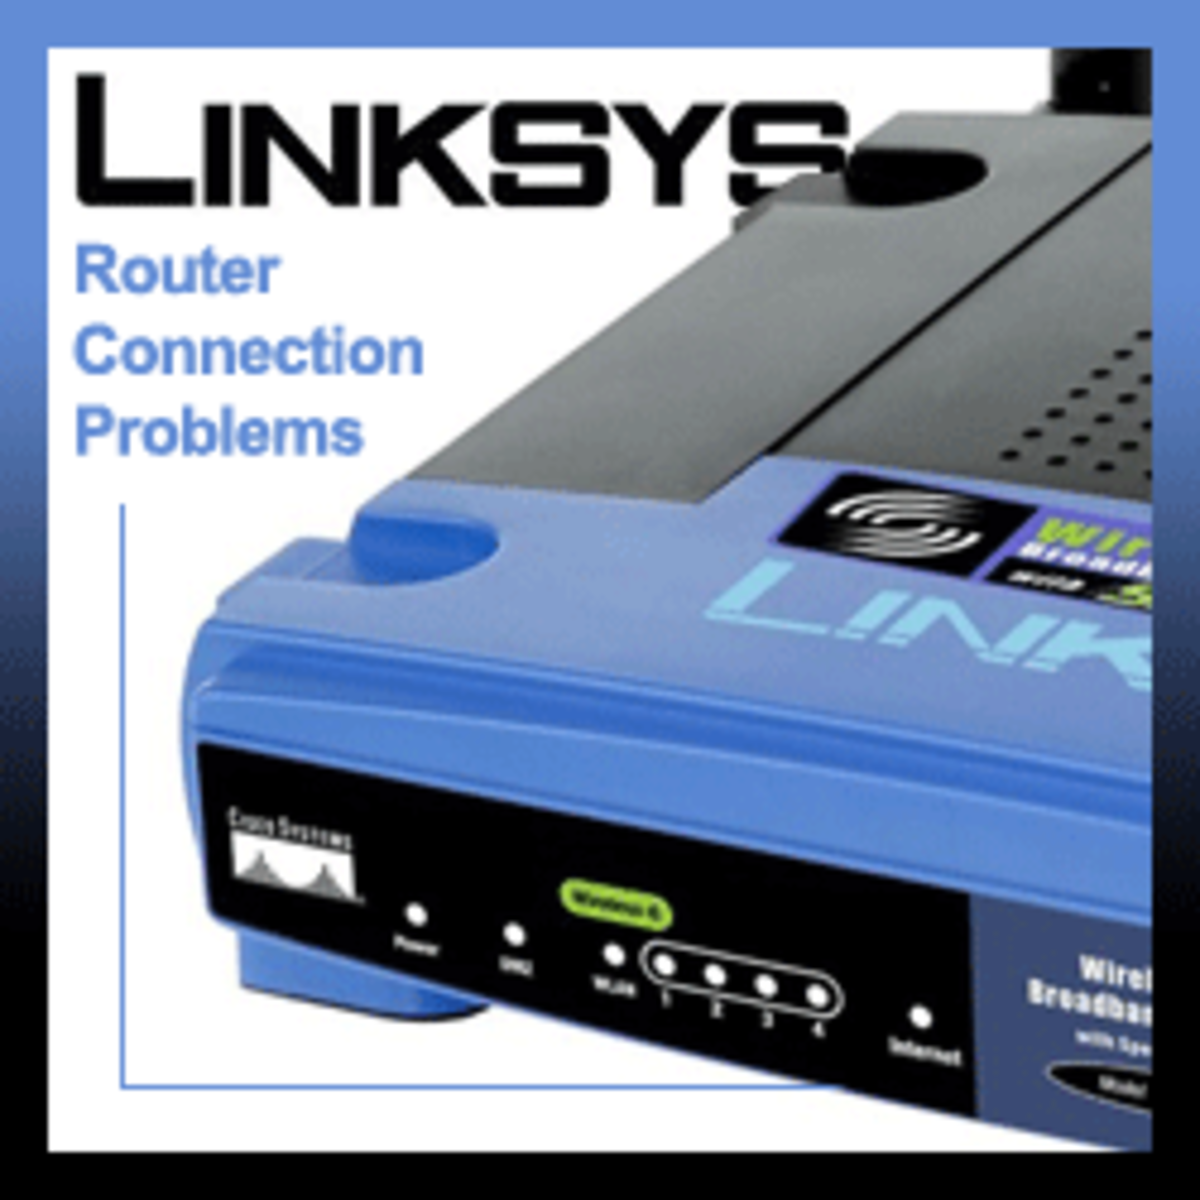 How to fix linksys router connection problems turbofuture how to fix linksys router connection problems greentooth Image collections